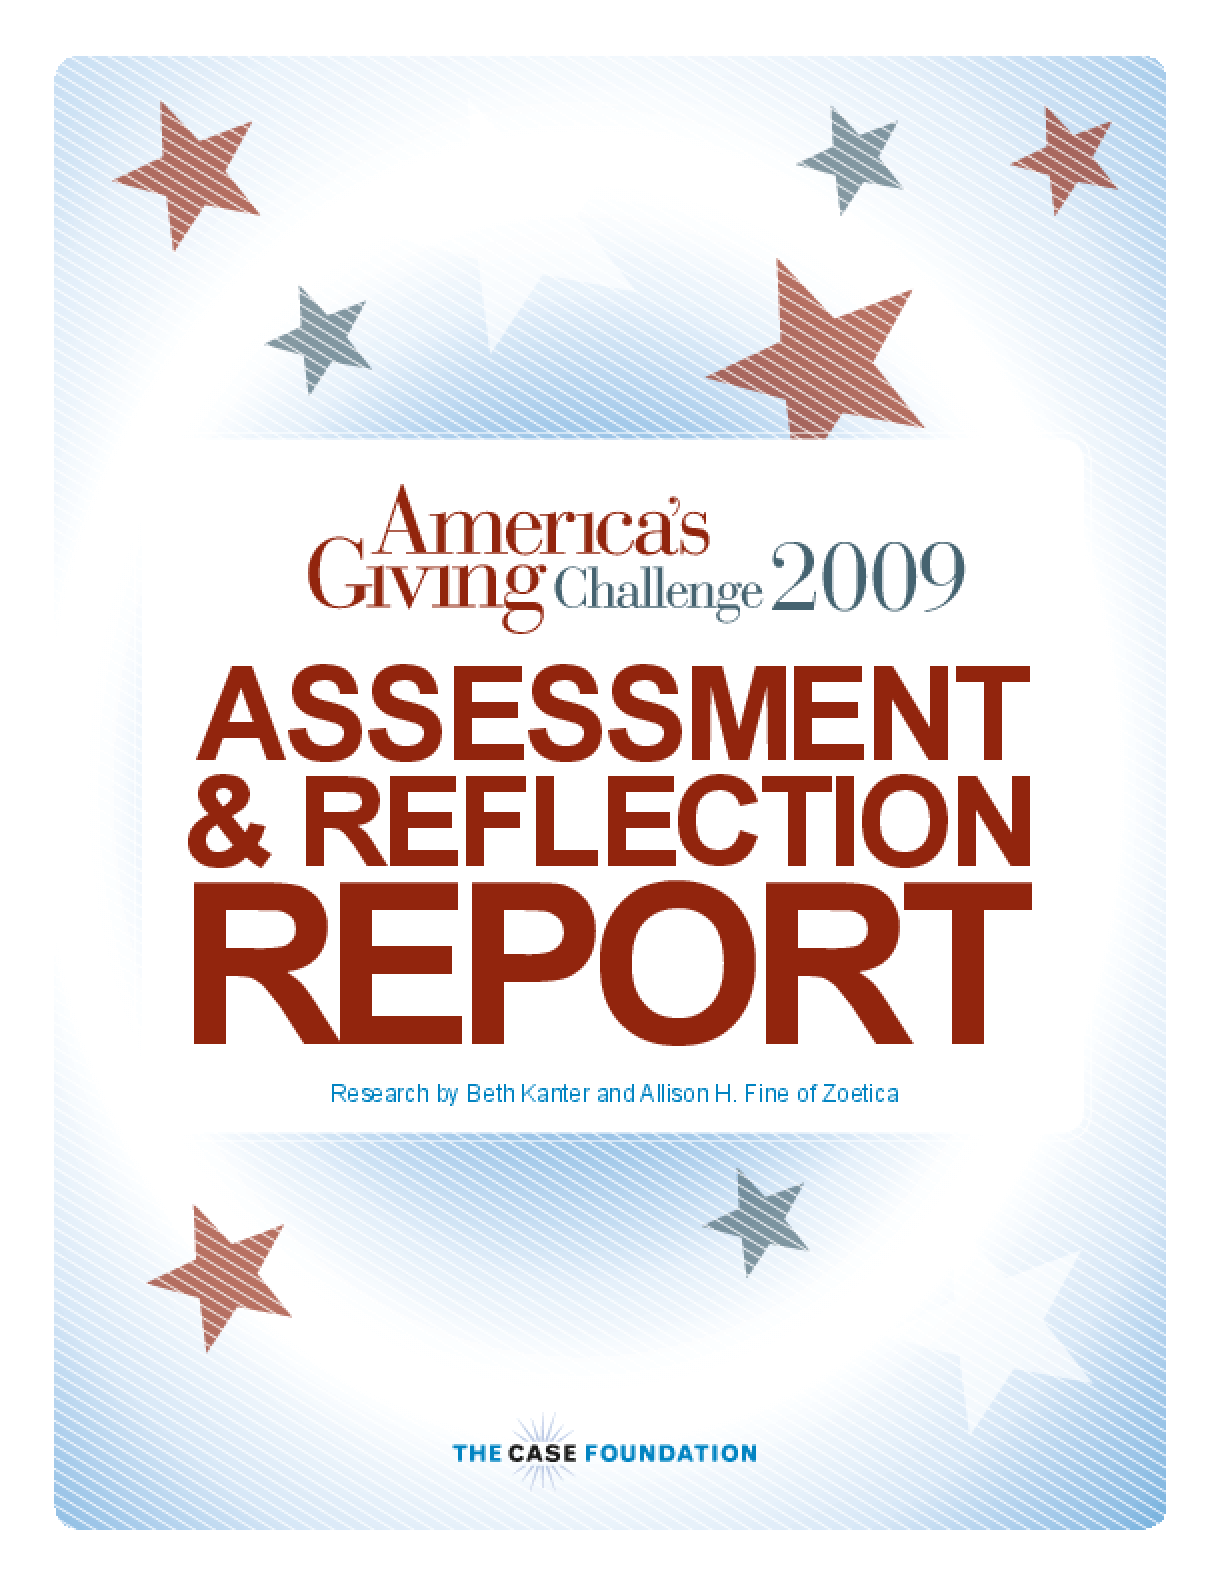 America's Giving Challenge 2009: Assessment & Reflection Report